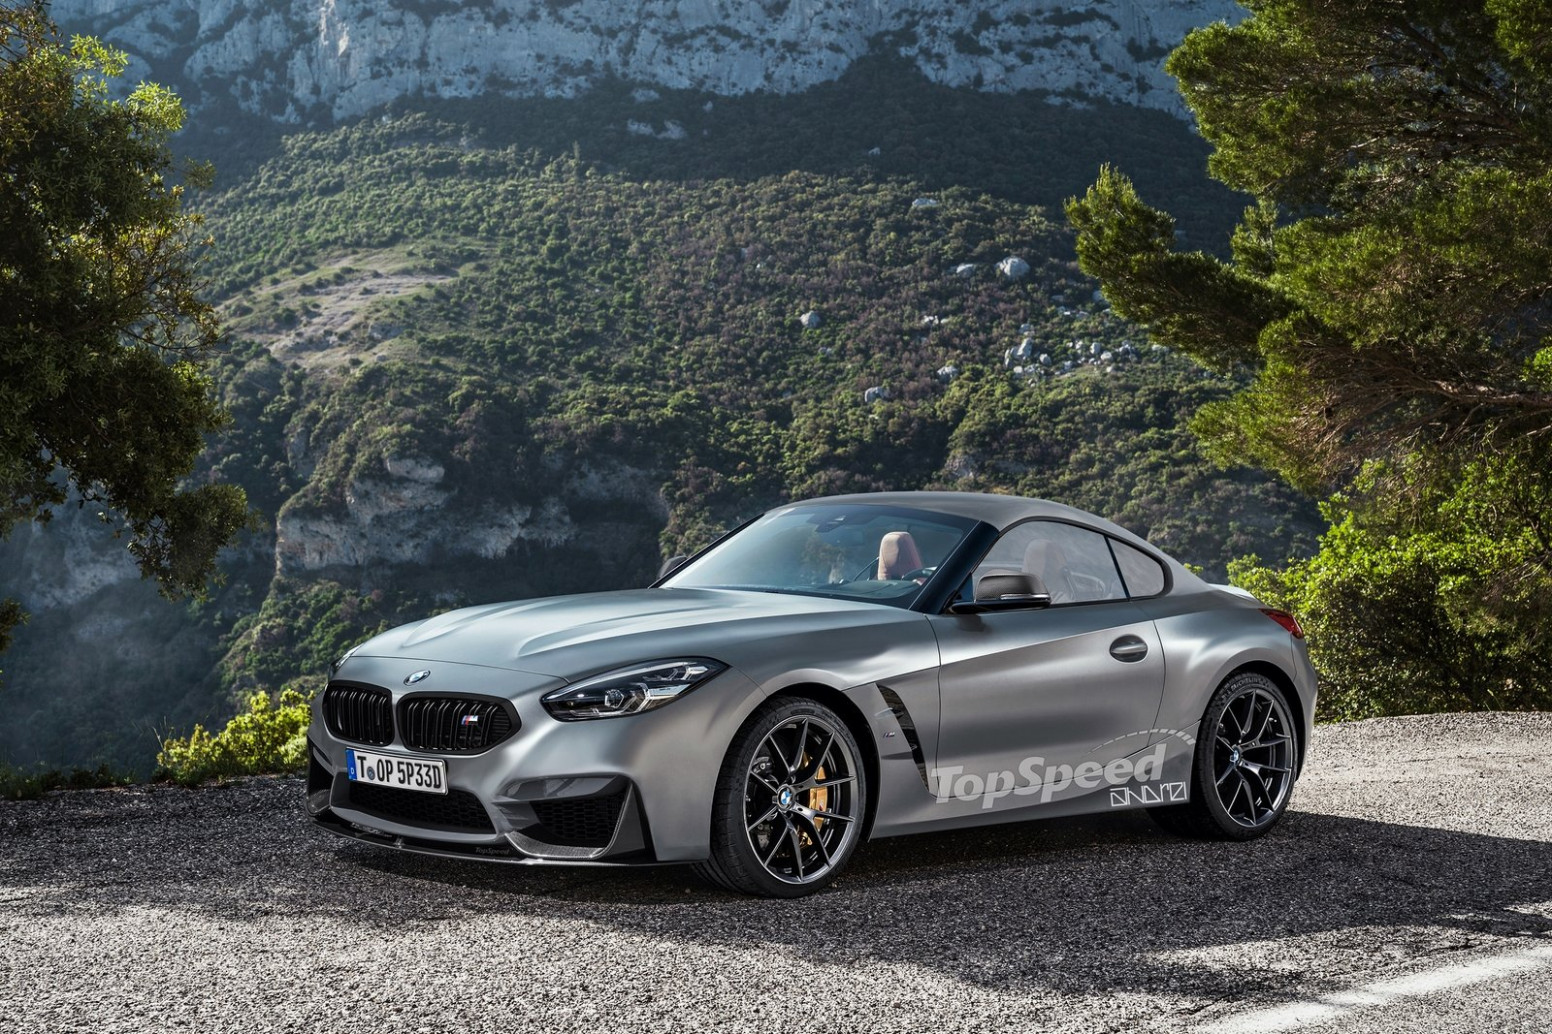 Exterior and Interior 2022 BMW Z4 Roadster